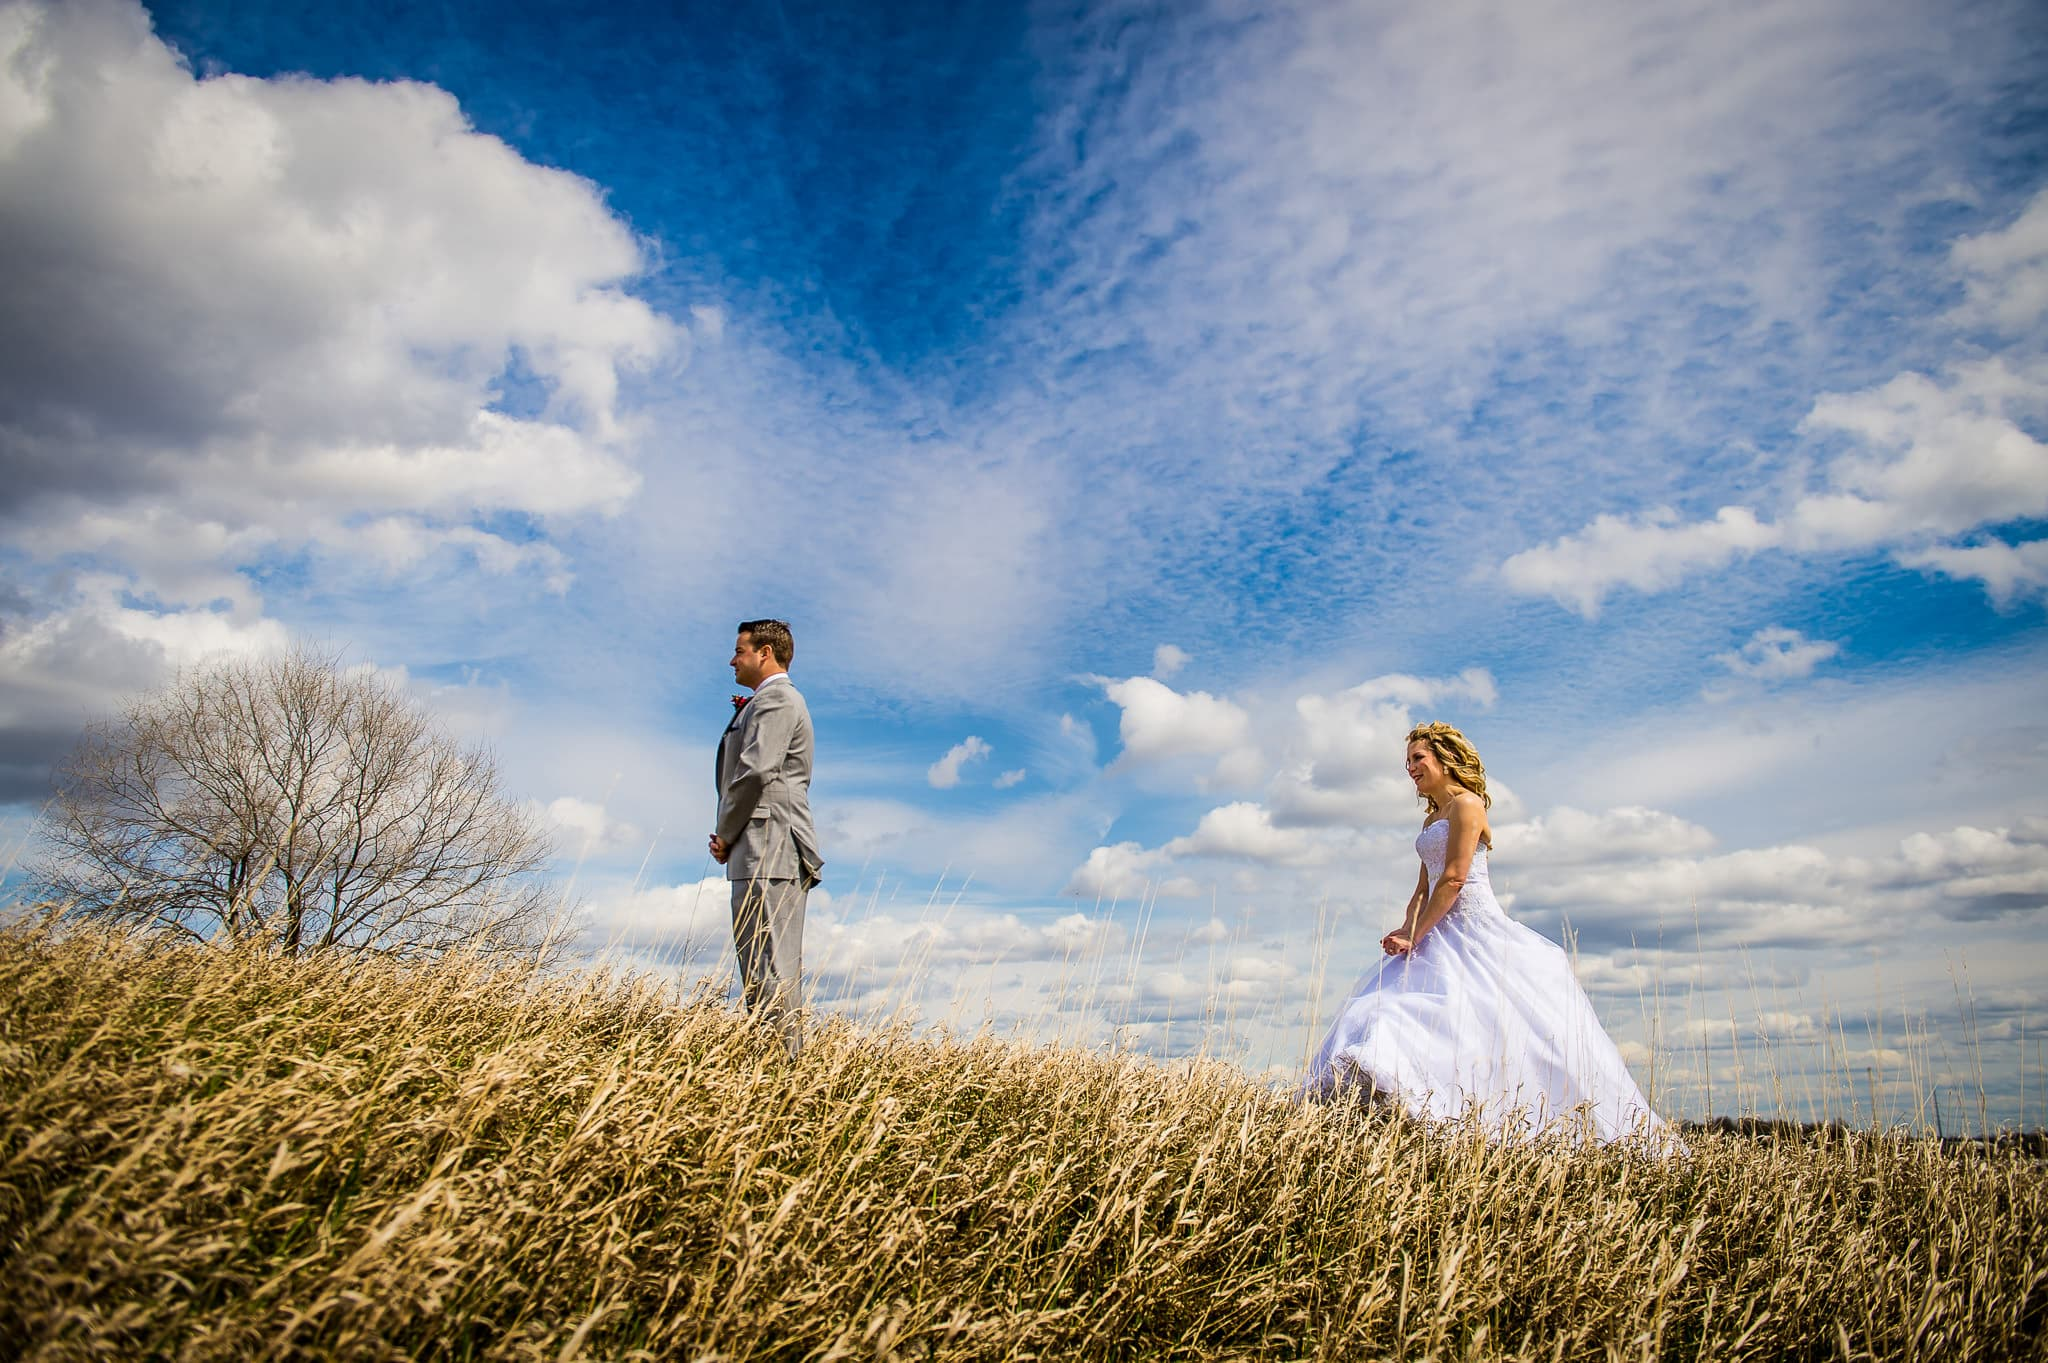 A couple getting ready for their first look on their wedding day in a grassy field with beautiful blue sky and clouds in the background